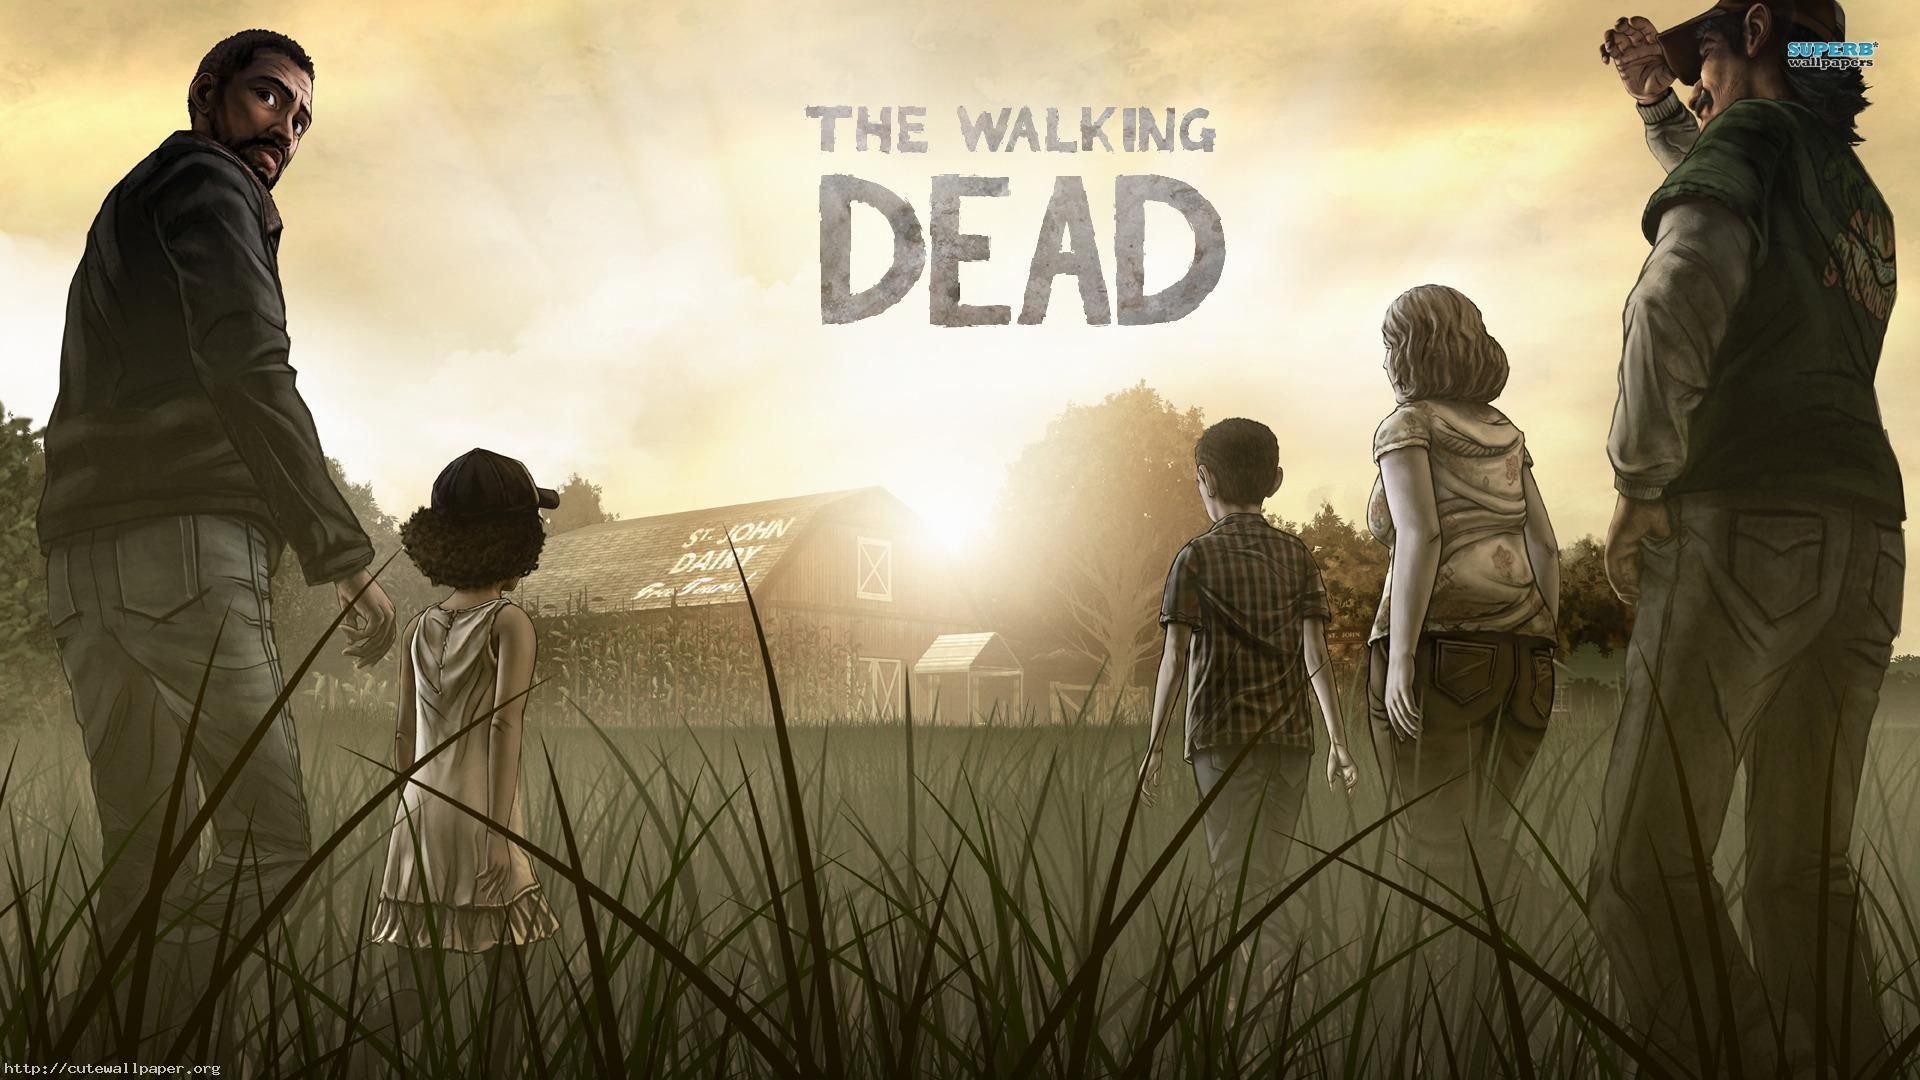 Walking dead hd wallpapers group 19201080 the walking dead walking dead hd wallpapers group 19201080 the walking dead wallpapers 19201080 voltagebd Choice Image